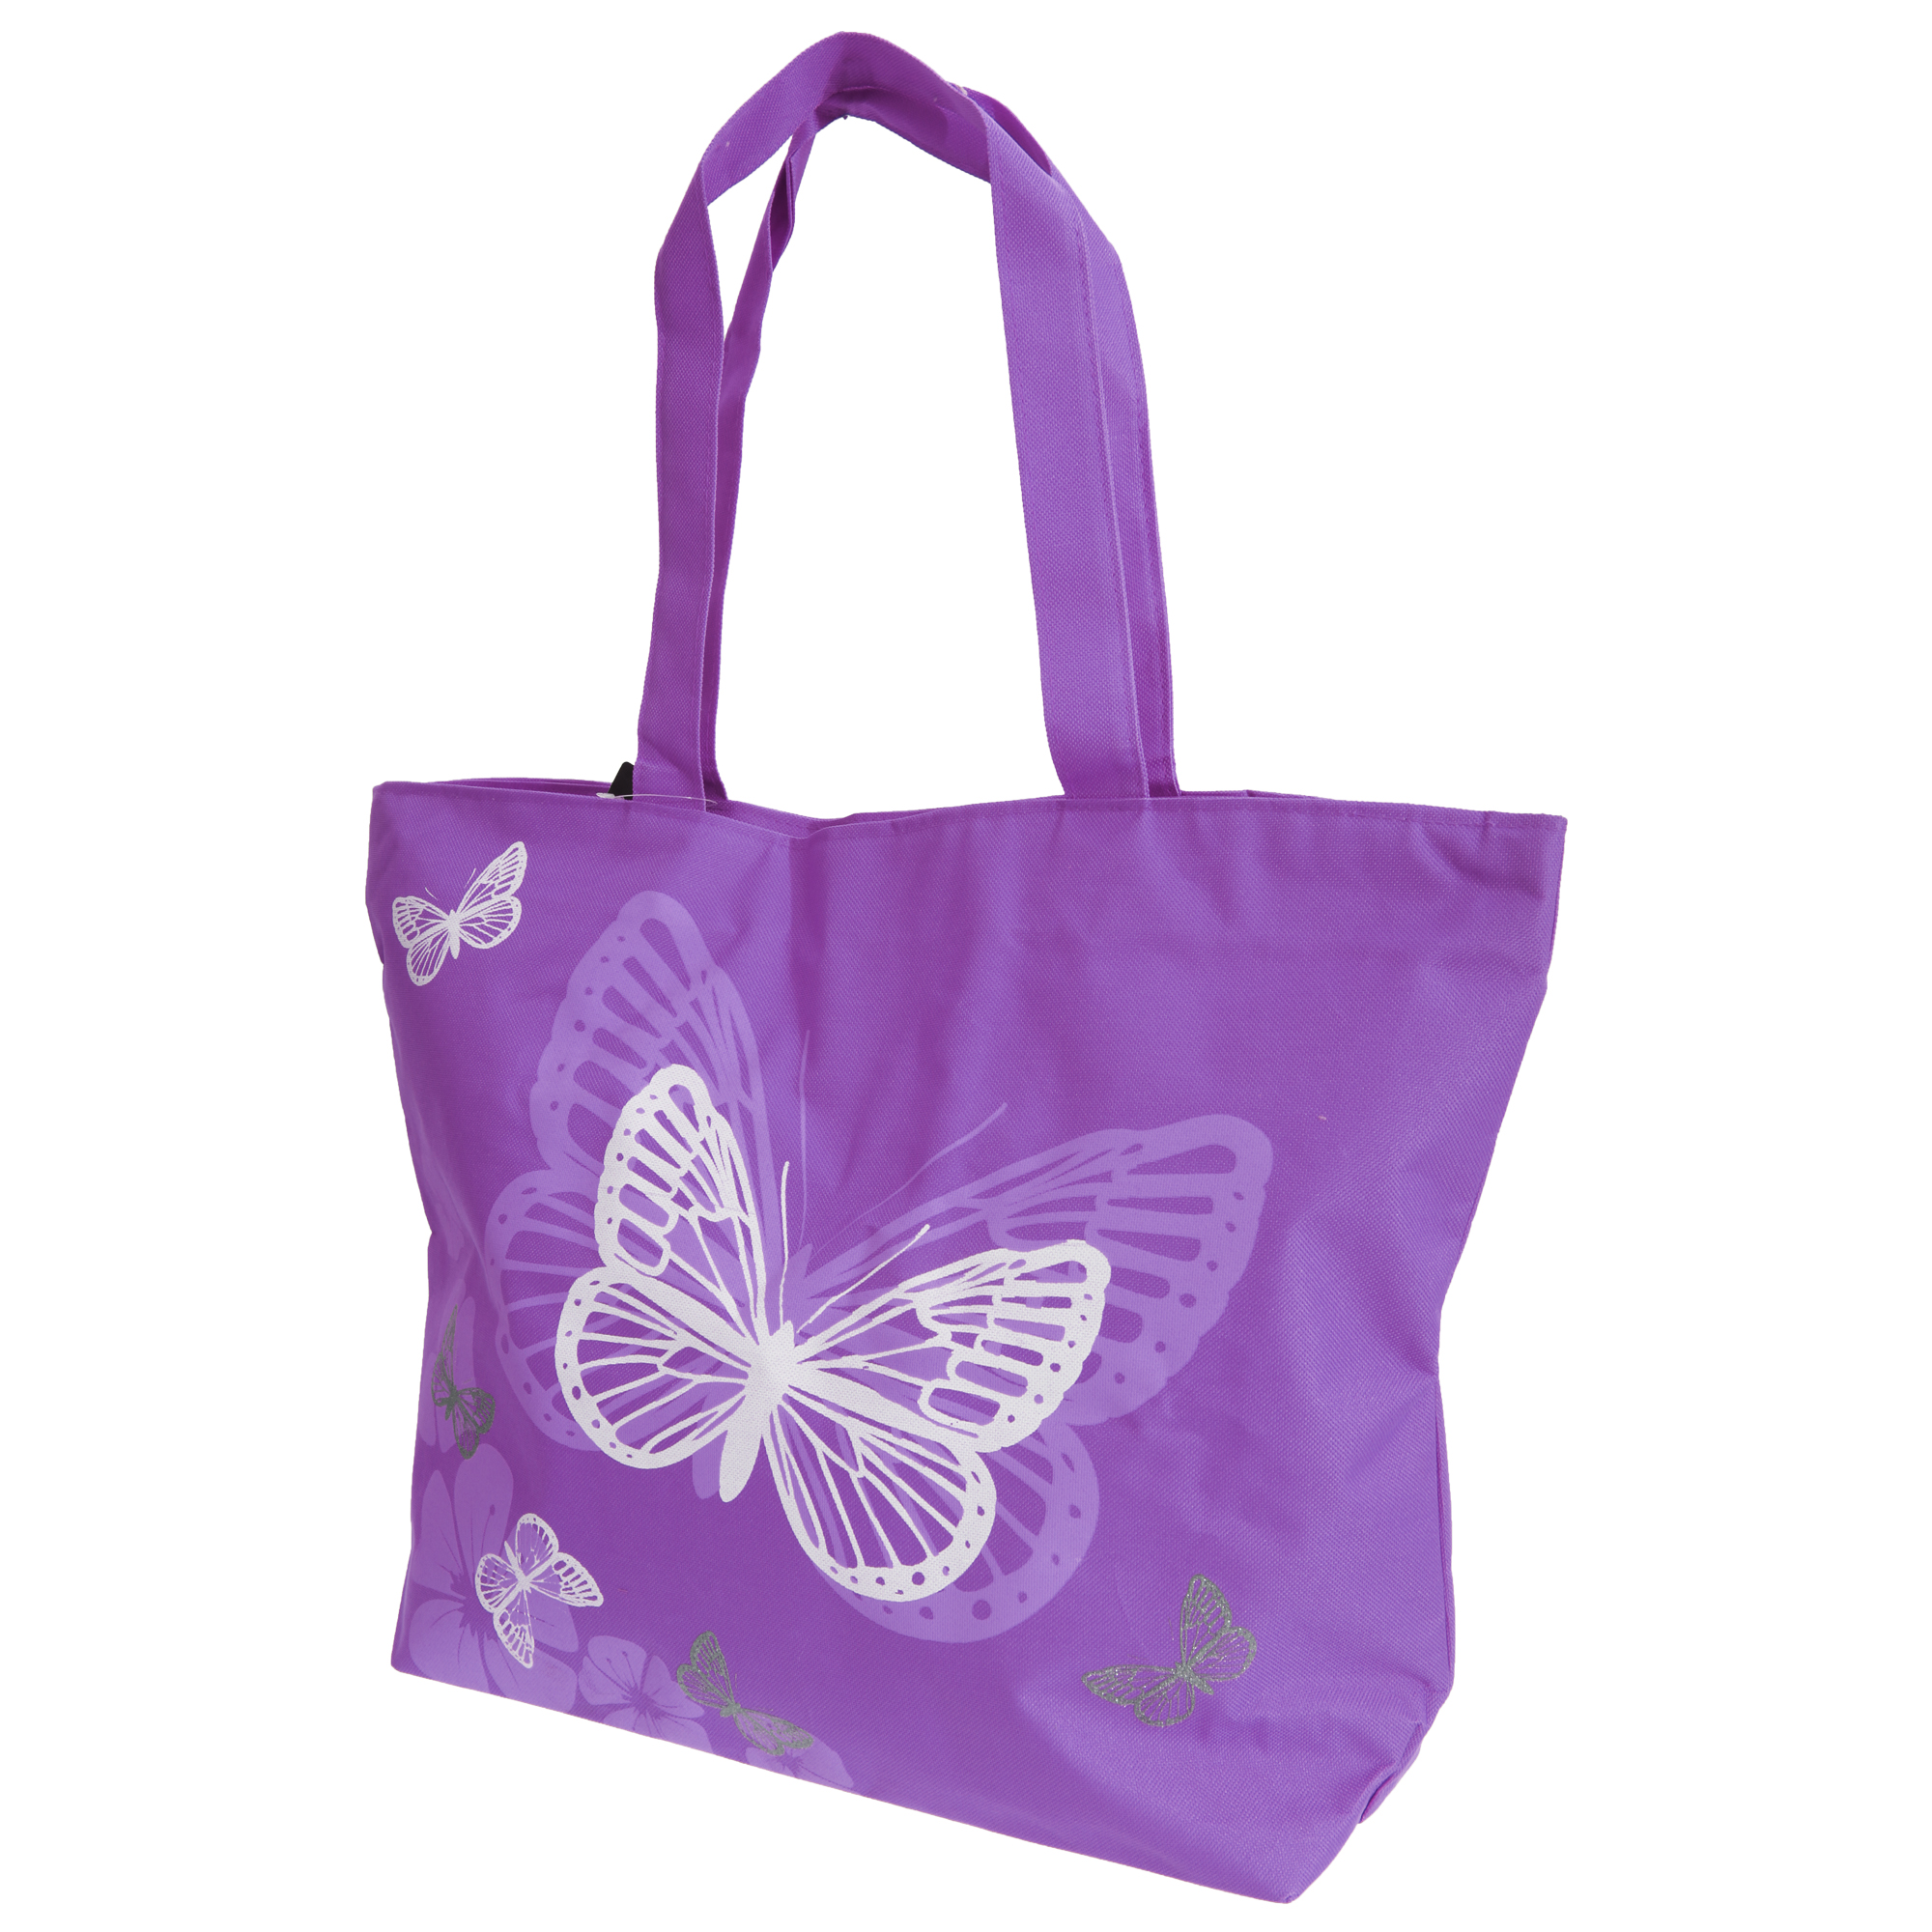 FLOSO Womens/Ladies Floral Butterfly Design Handbag (One Size) (Purple)